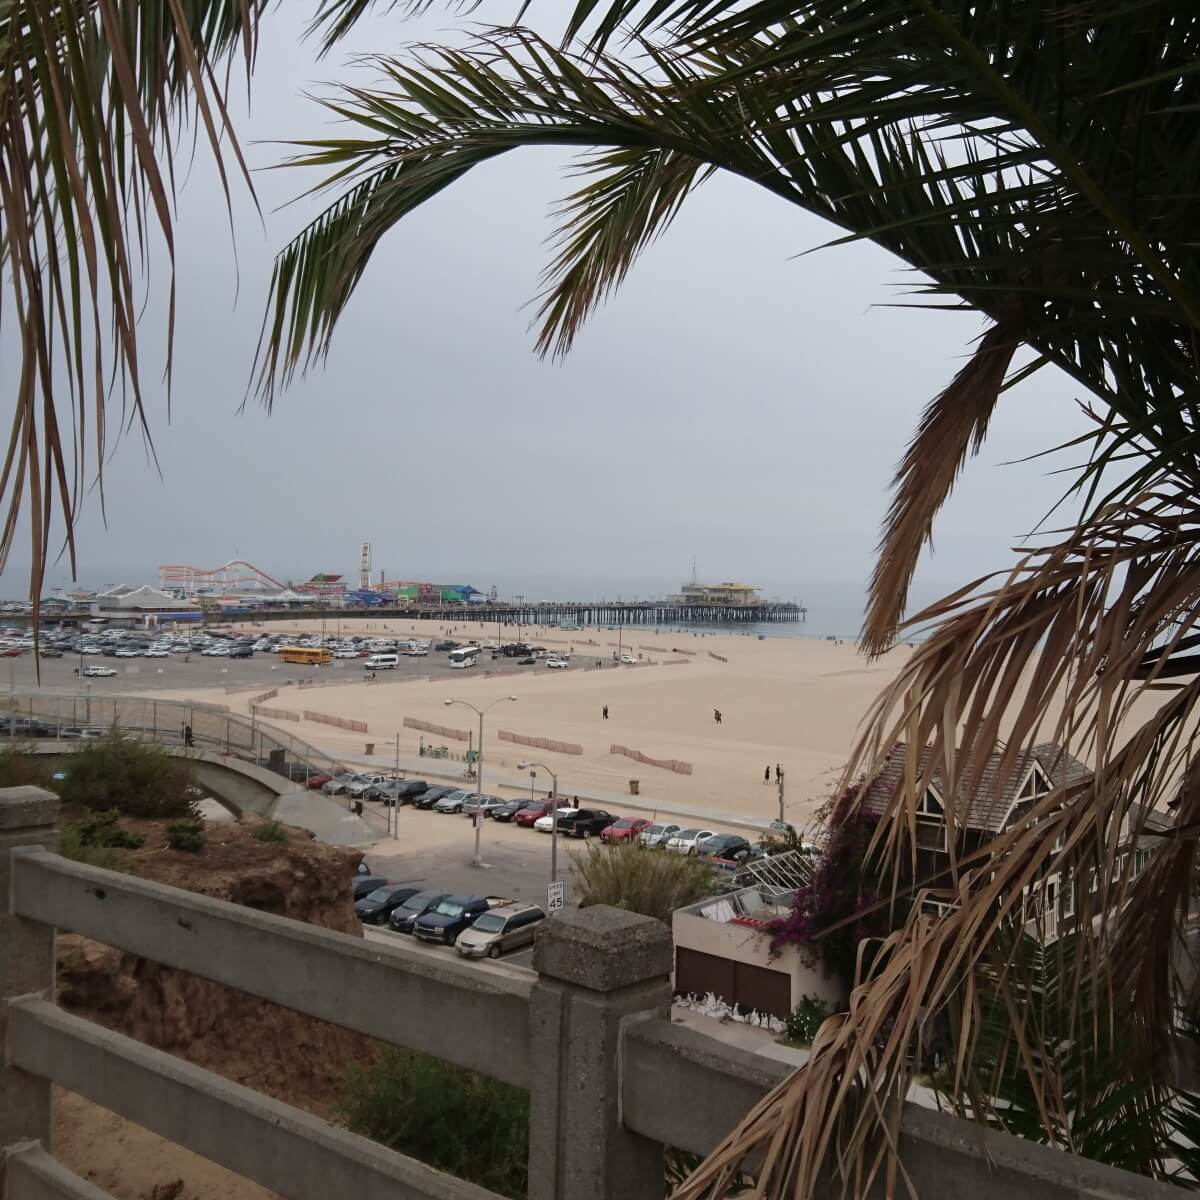 Los Angeles – Santa Monica